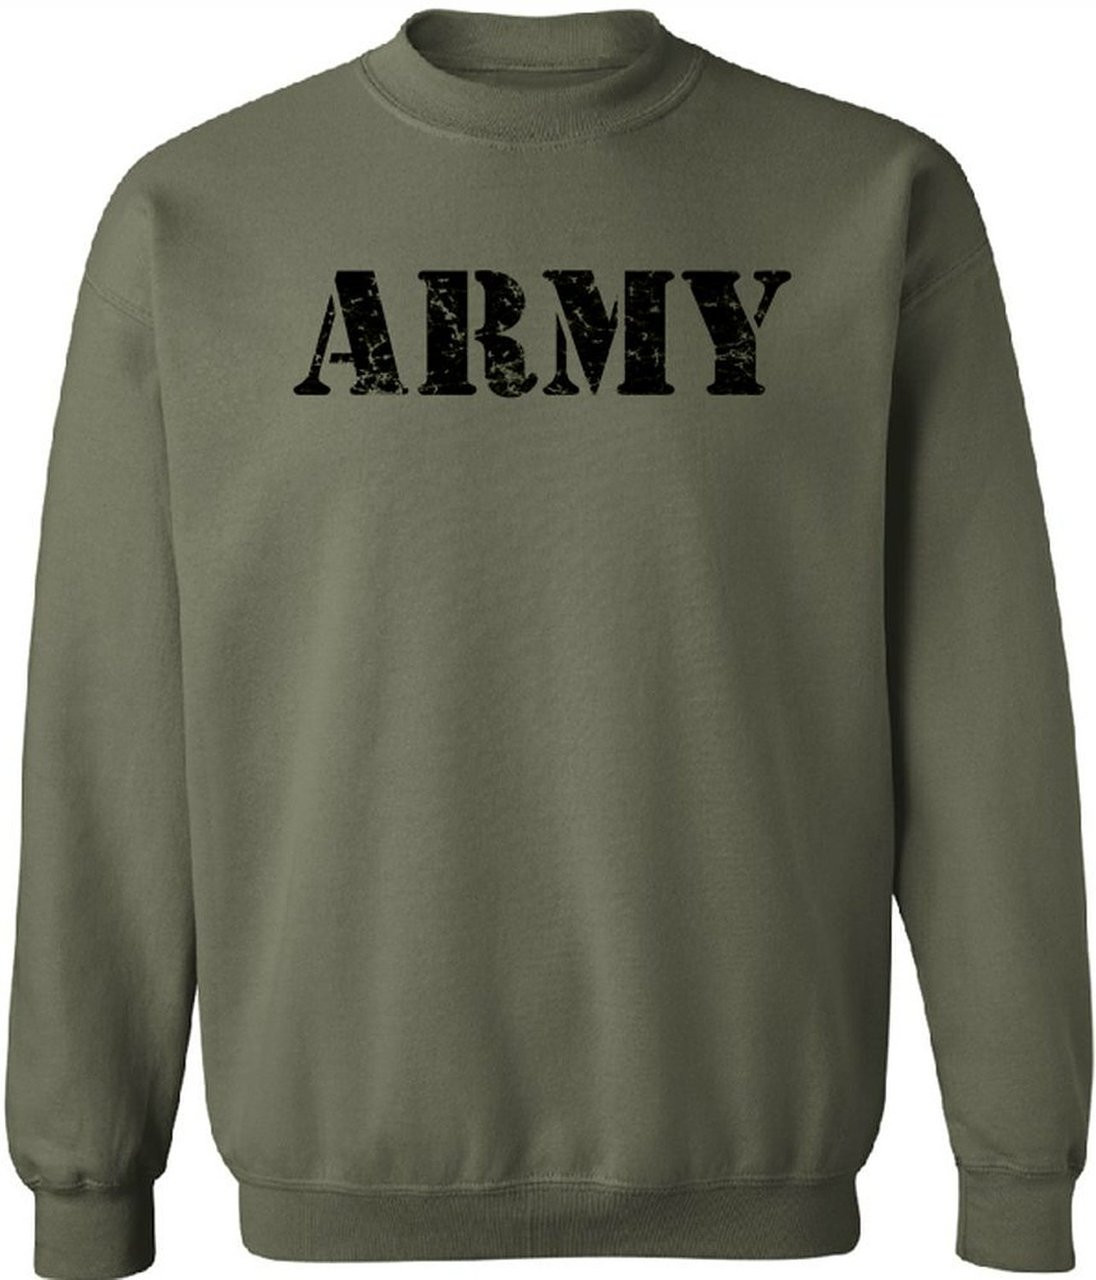 62b36c3c7 Military Vintage Army Logo T-Shirts, Sweatshirts and Hoodies